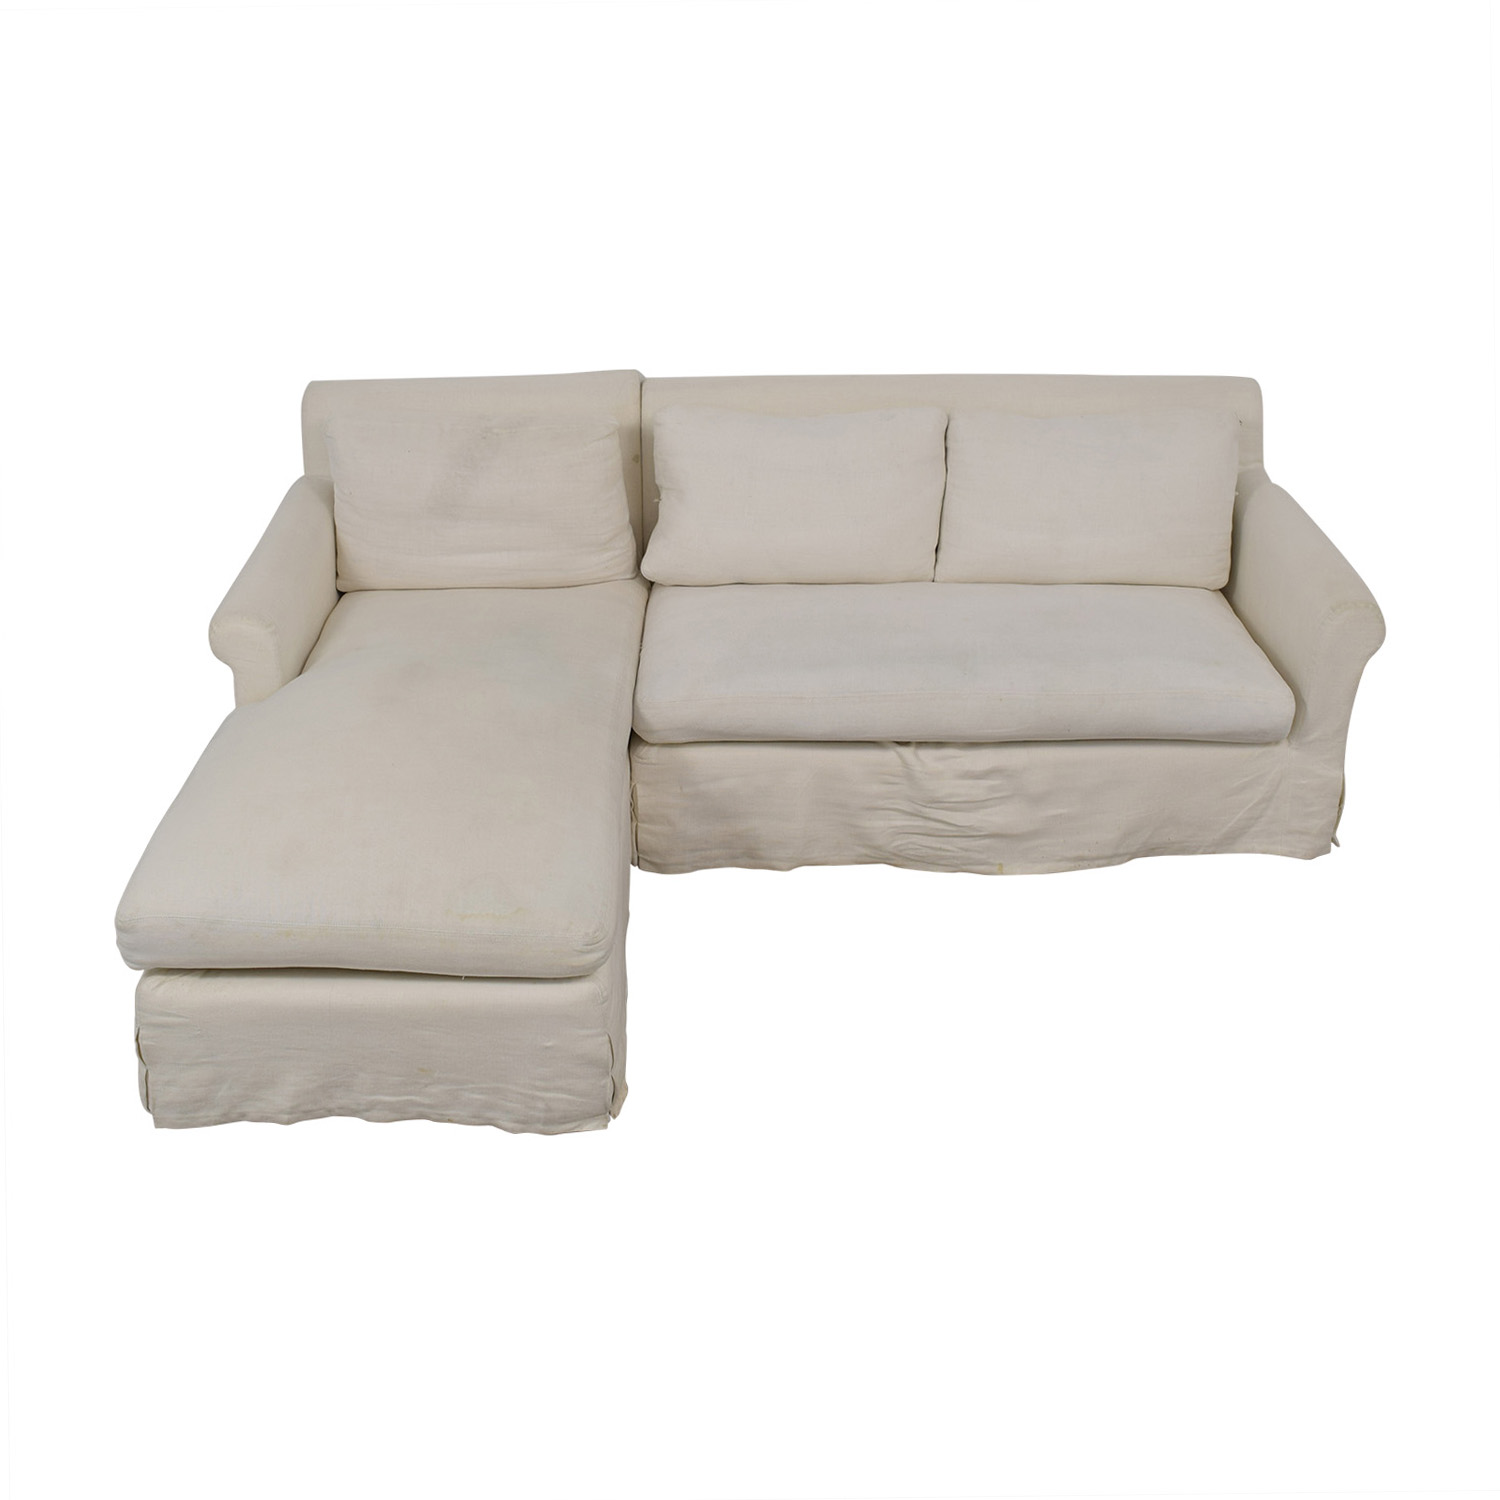 Restoration Hardware Restoration Hardware Petite Roll White Left Chaise Sectional dimensions